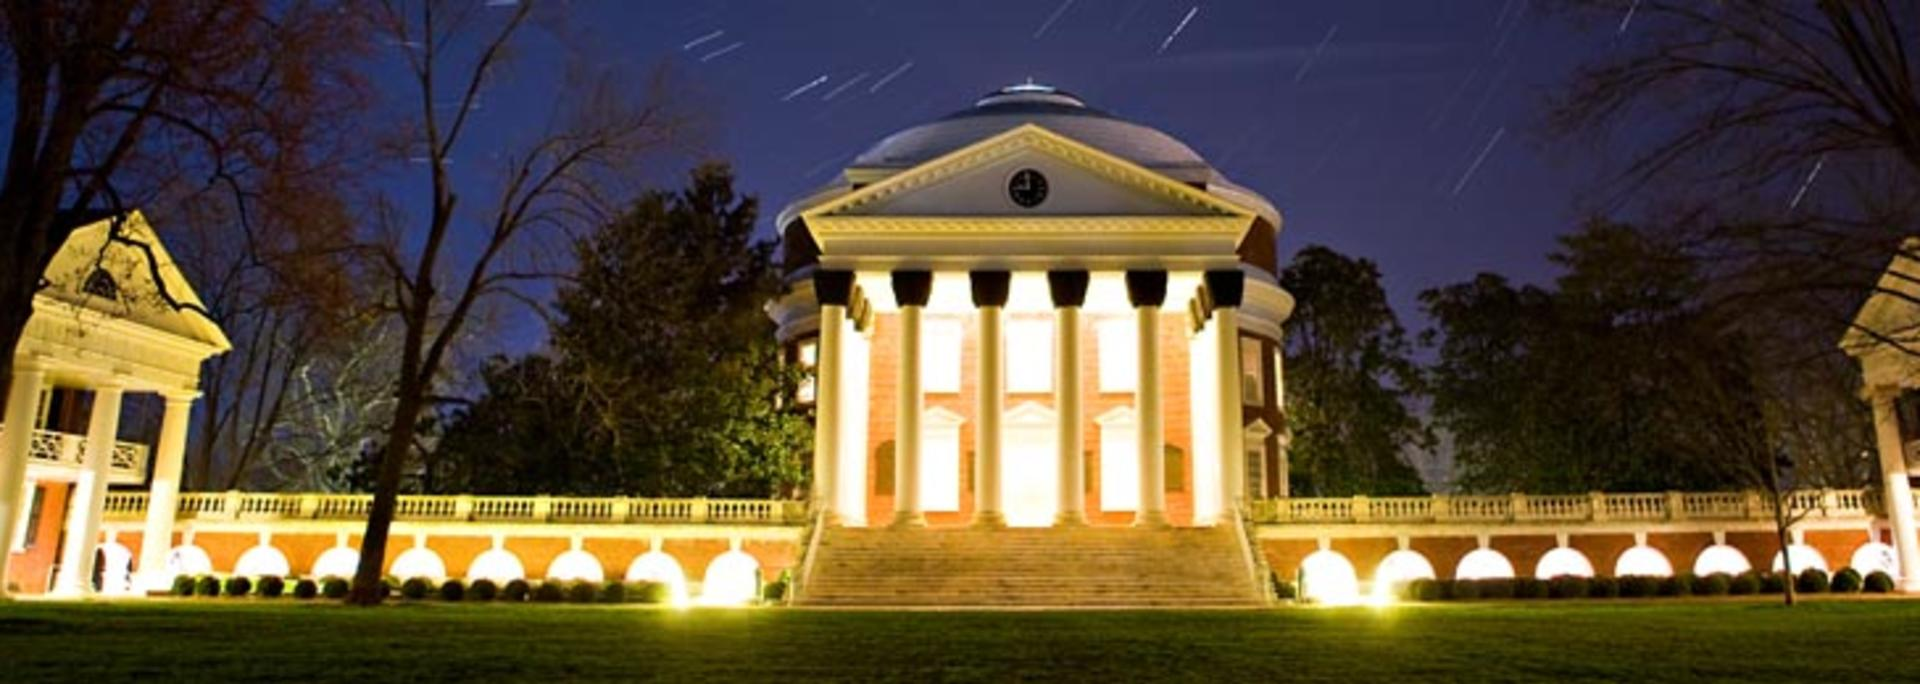 Rotunda at Night